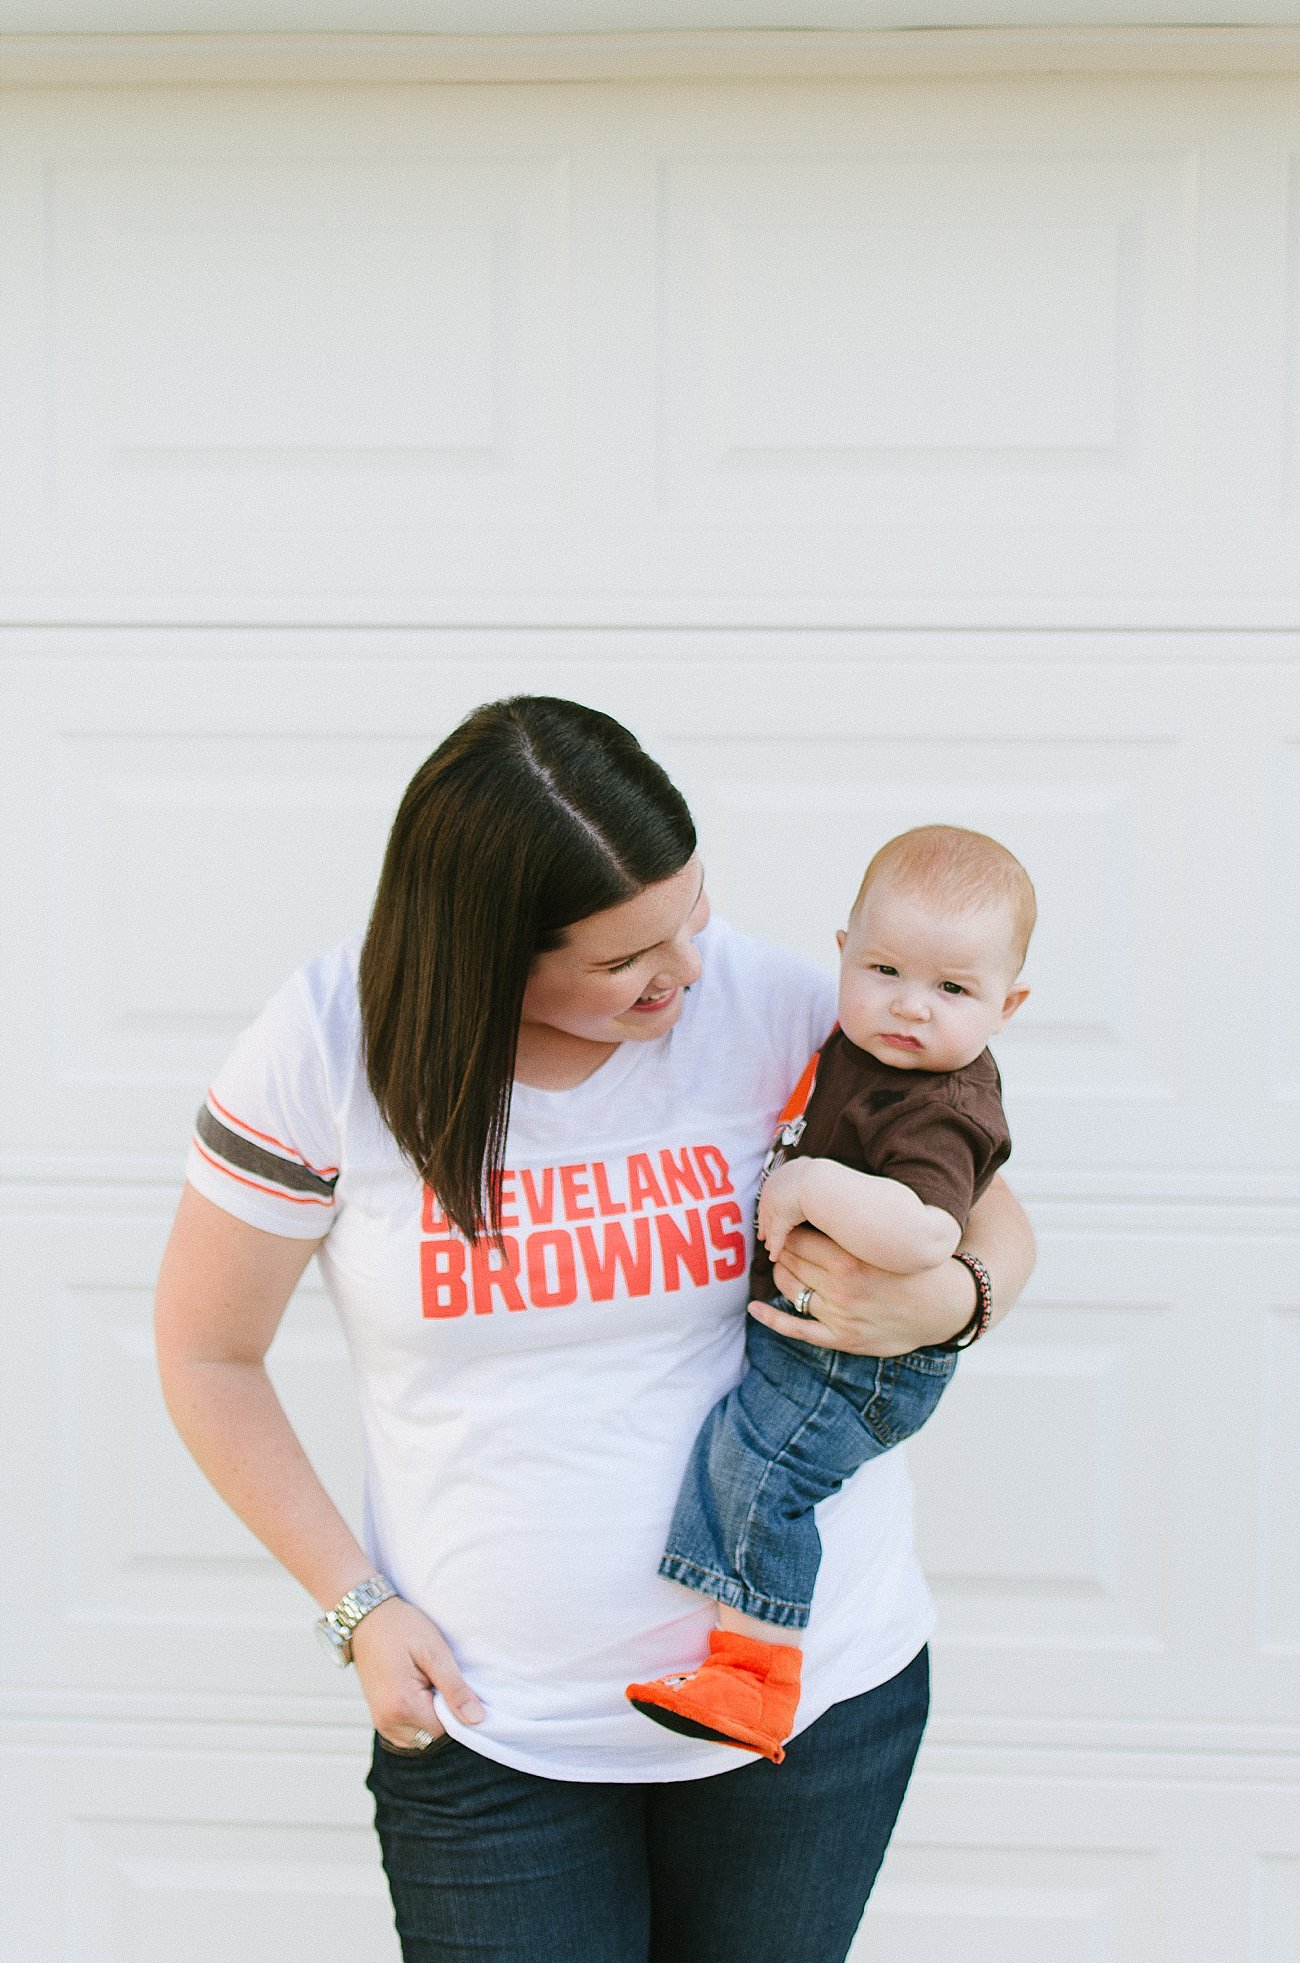 Cleveland Browns NFL Fan Style #NFLfanstyle #cg #ad (6)